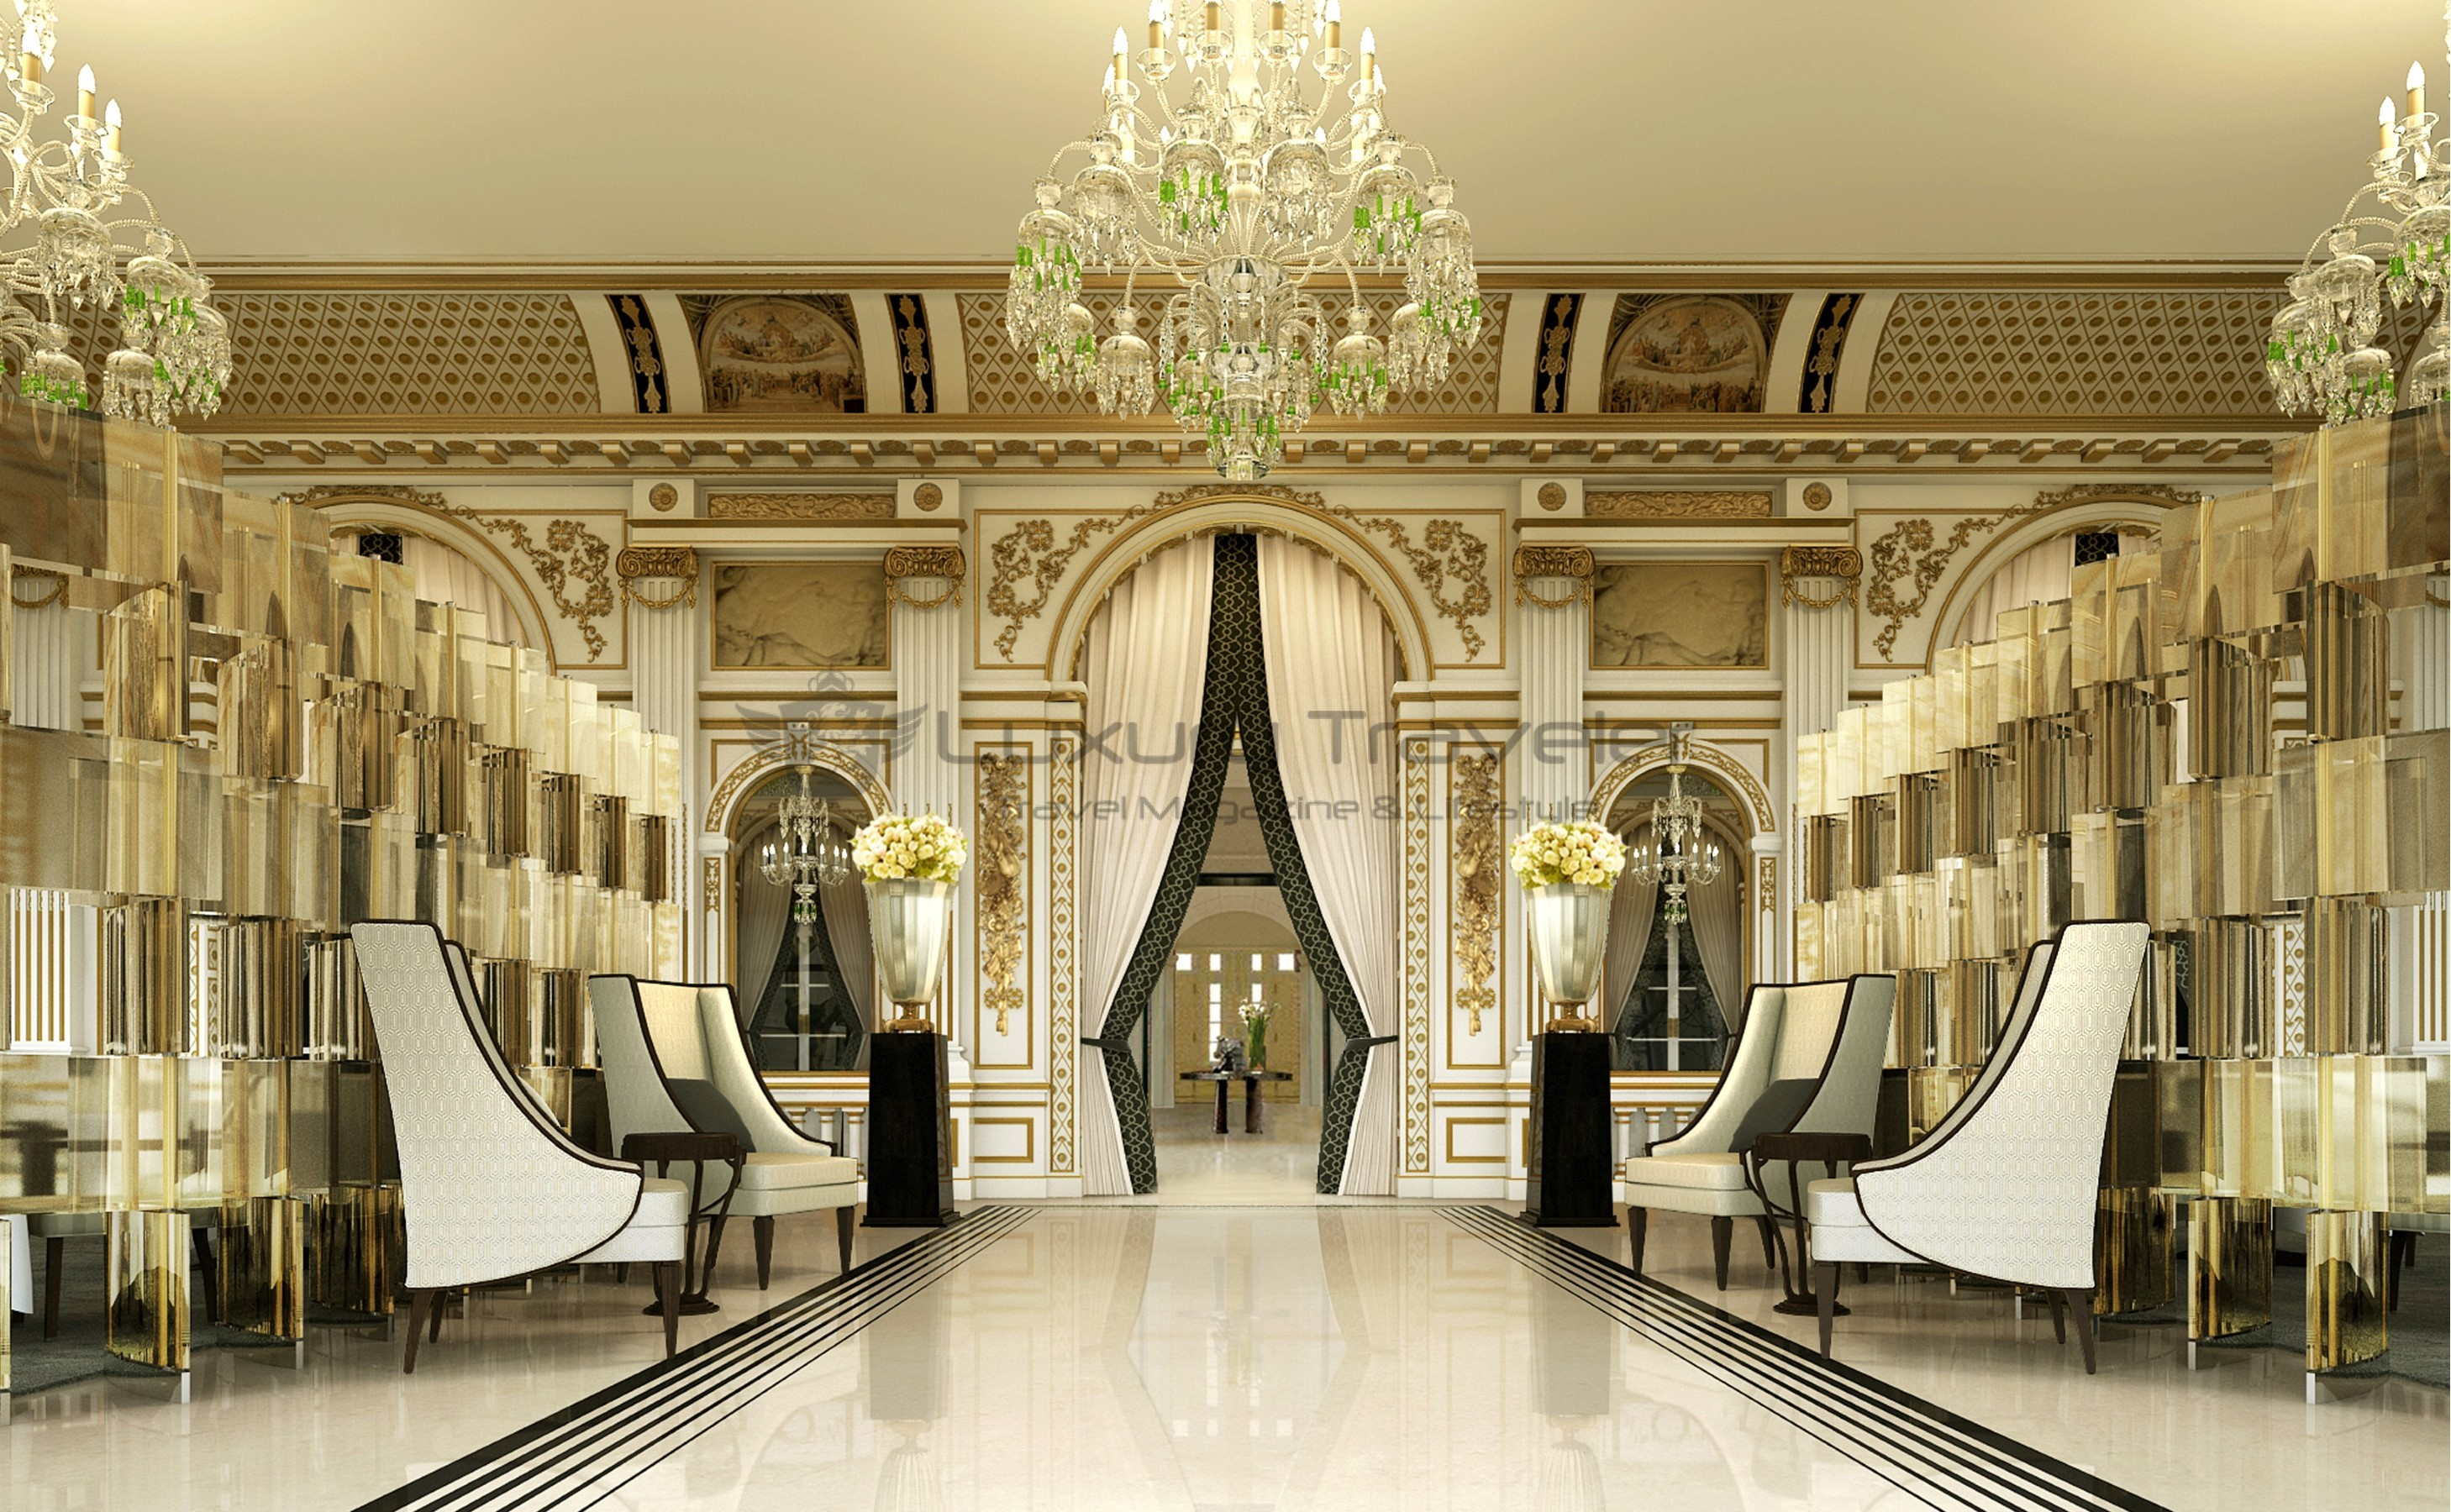 The peninsula luxury 5 star hotel paris luxury traveler for Interieur maison de luxe